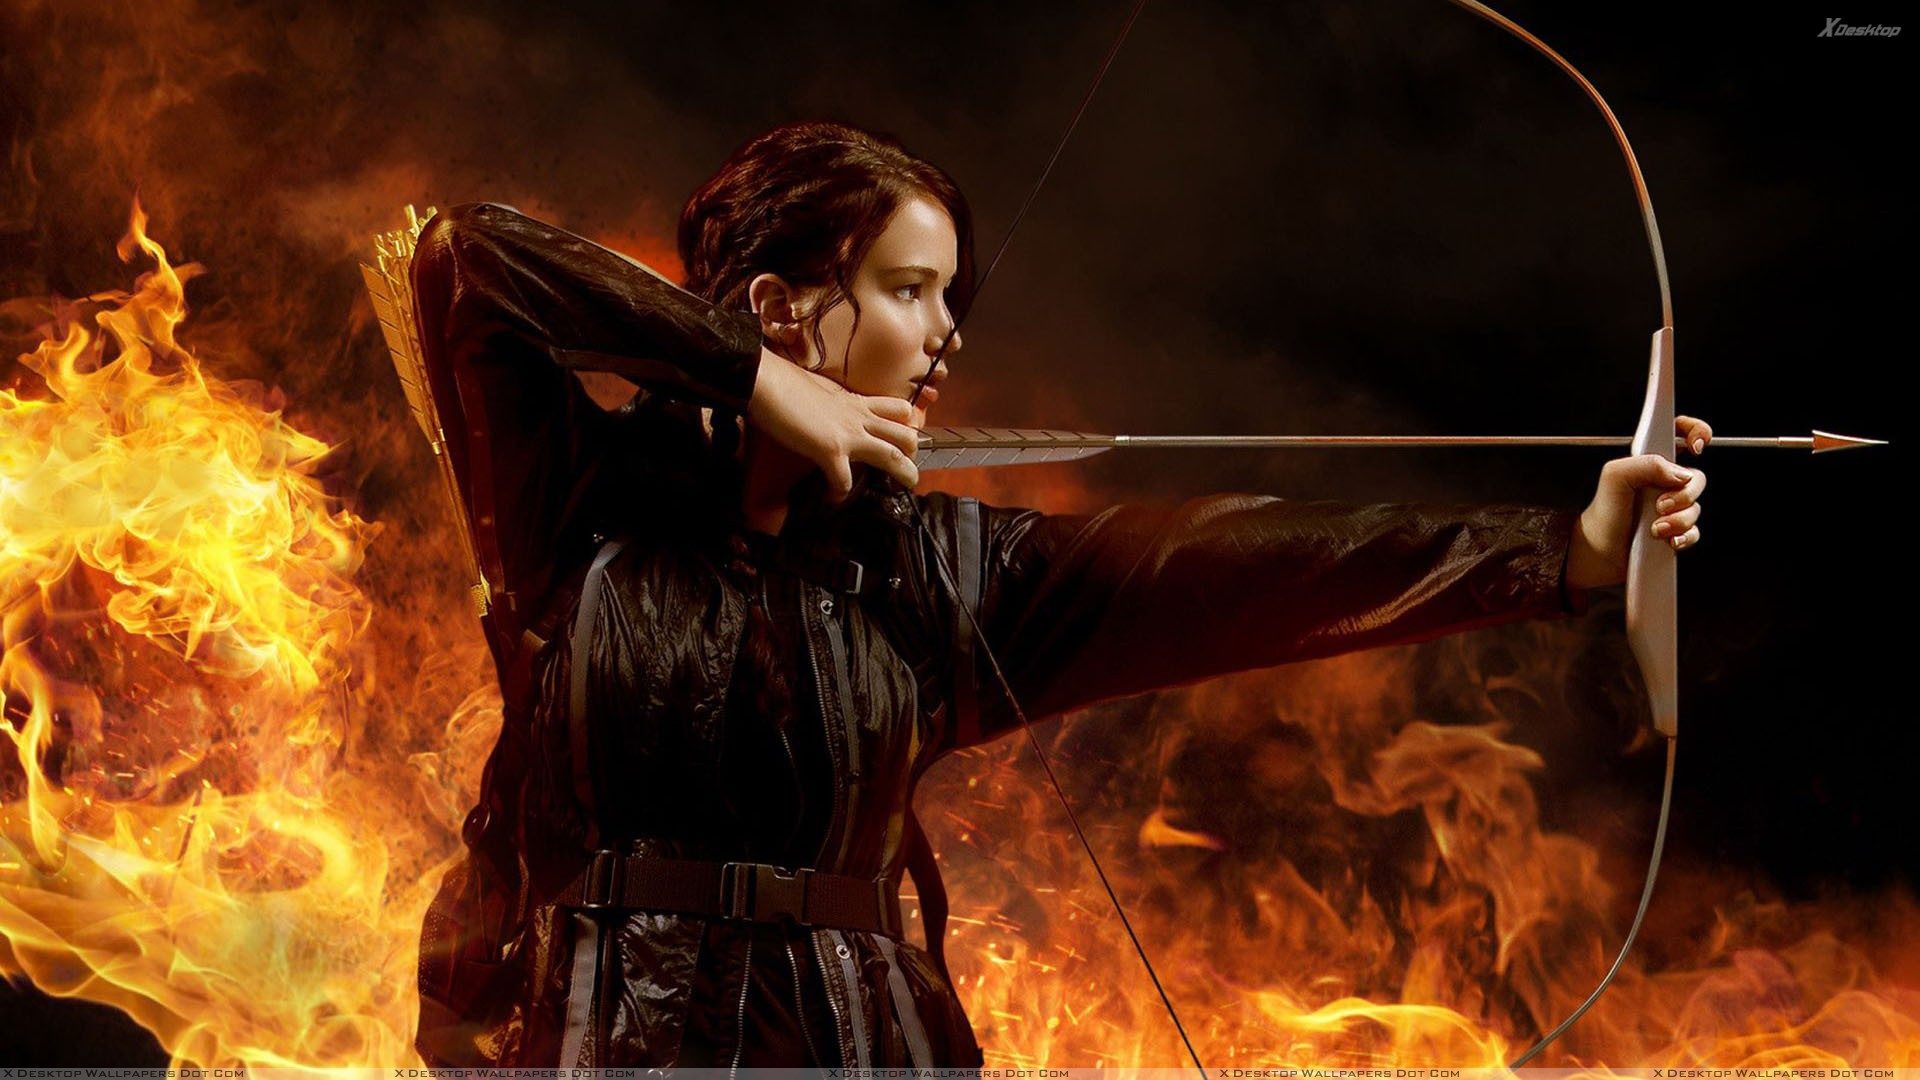 katniss everdeen with her bow aiming at something wallpaper. Black Bedroom Furniture Sets. Home Design Ideas